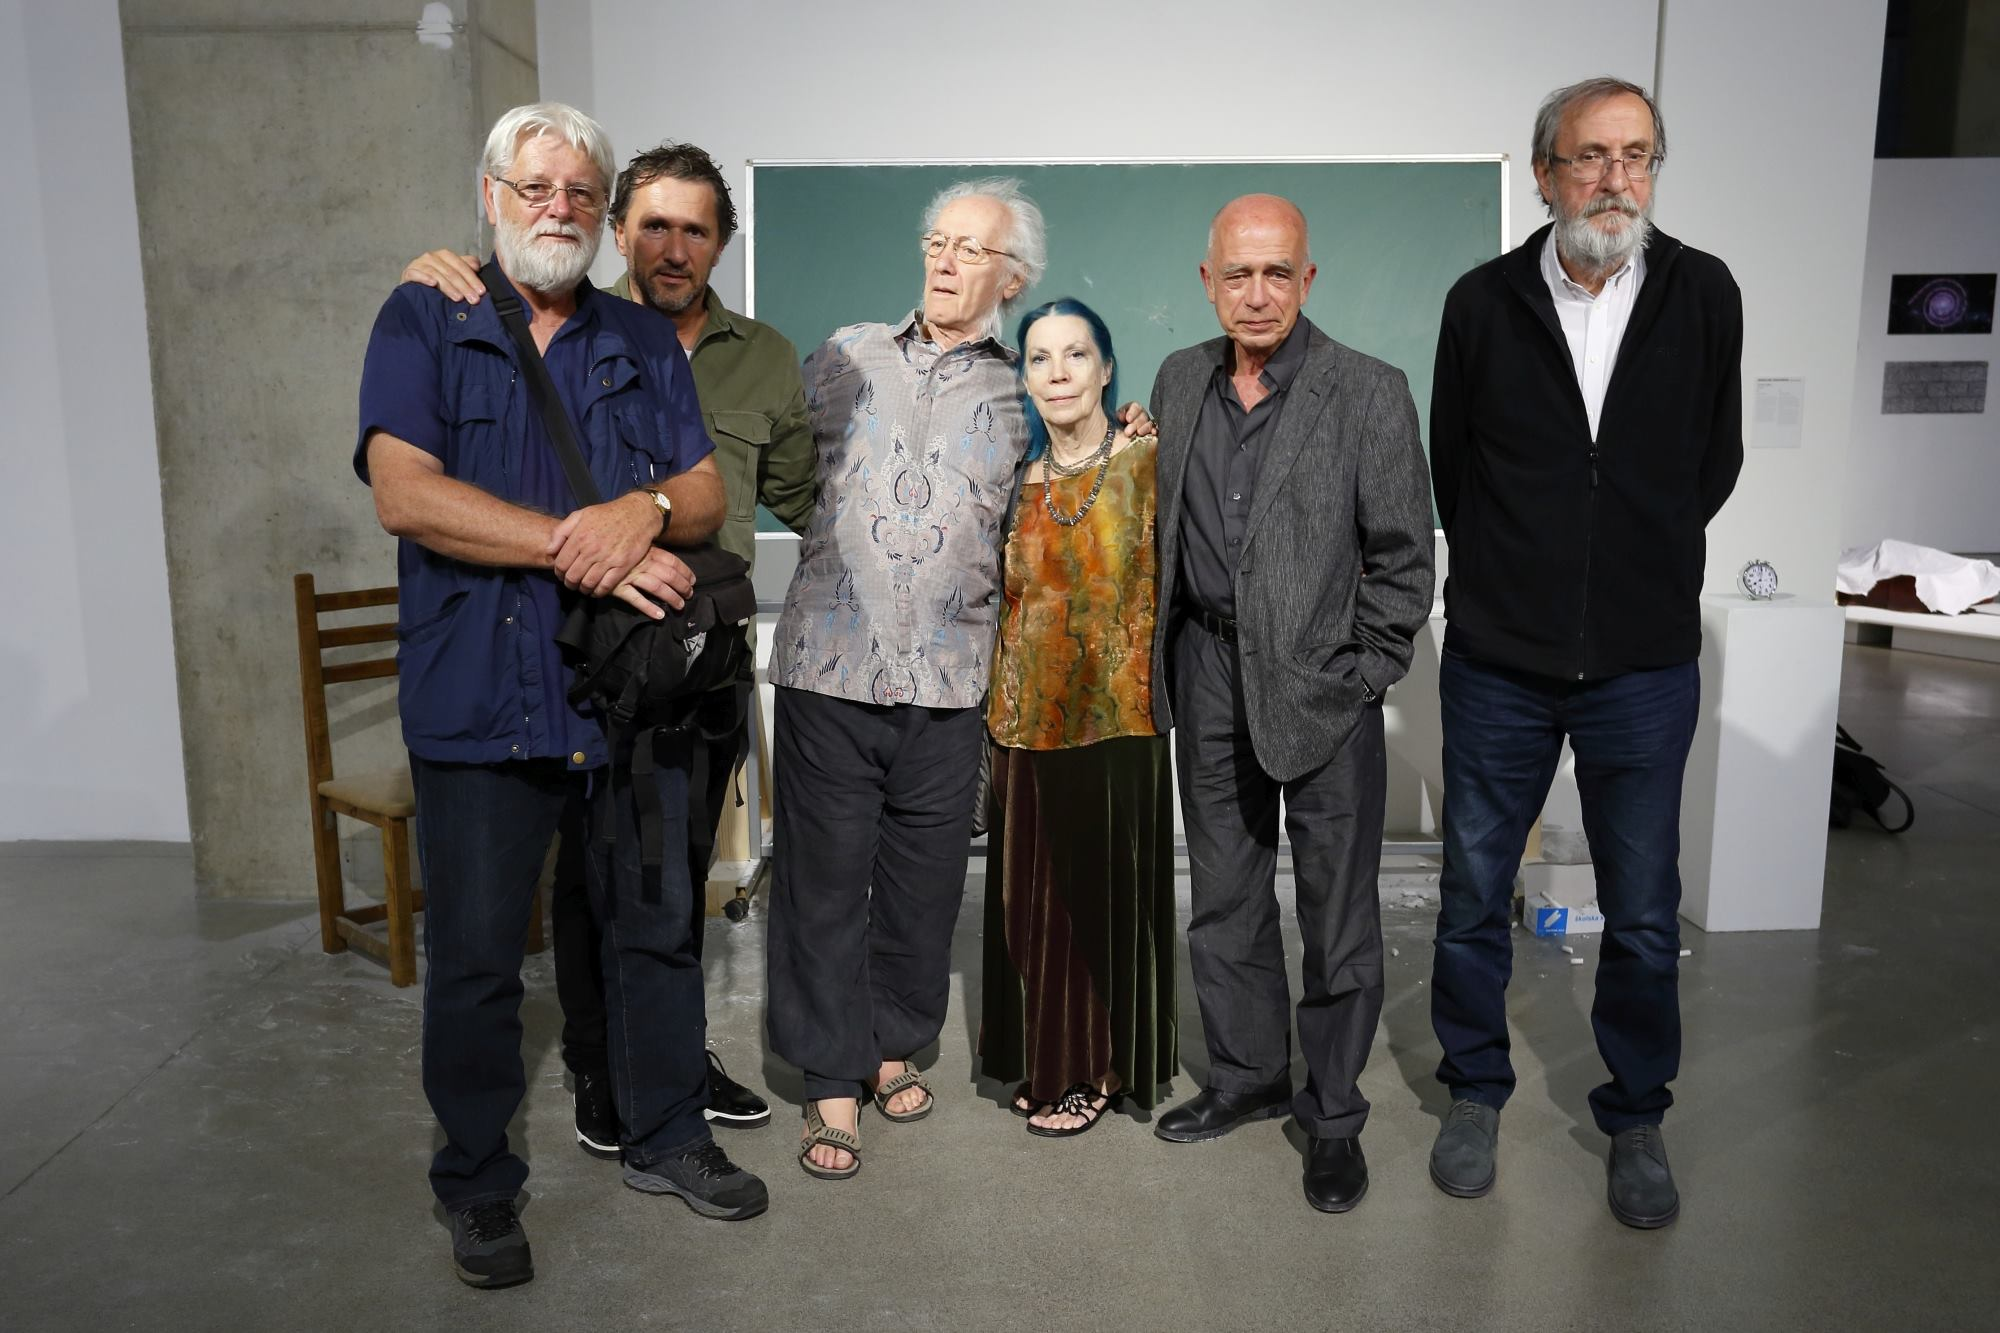 'Artist on Vacation' 2016  Valamar exhibition, of the project organised by the Institute for the Research of the Avant-Garde, at the MSU Zagreb: (left to right) Vladimir Gudac (Croatia), Marinko Sudac, Philip Corner and Phoebe Neville (Italy USA), Jaroslaw Kozlowski (Poland), Raša Todosijević (Serbia).